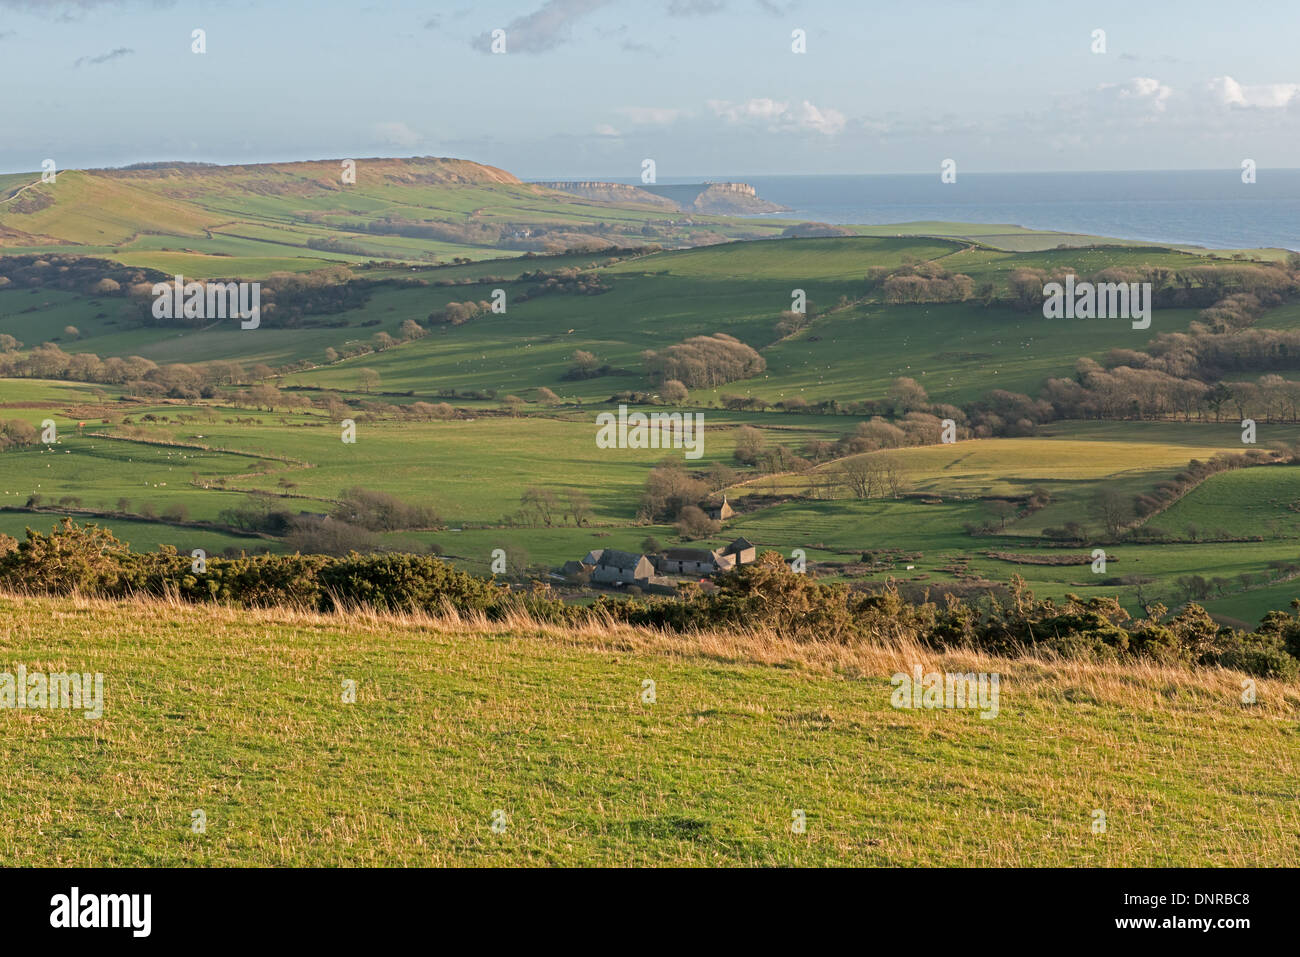 Countryside Views Of Tyneham And Surrounding Areas Including The Jurassic Coast From Povington Viewpoint. Doset, England, Uk - Stock Image